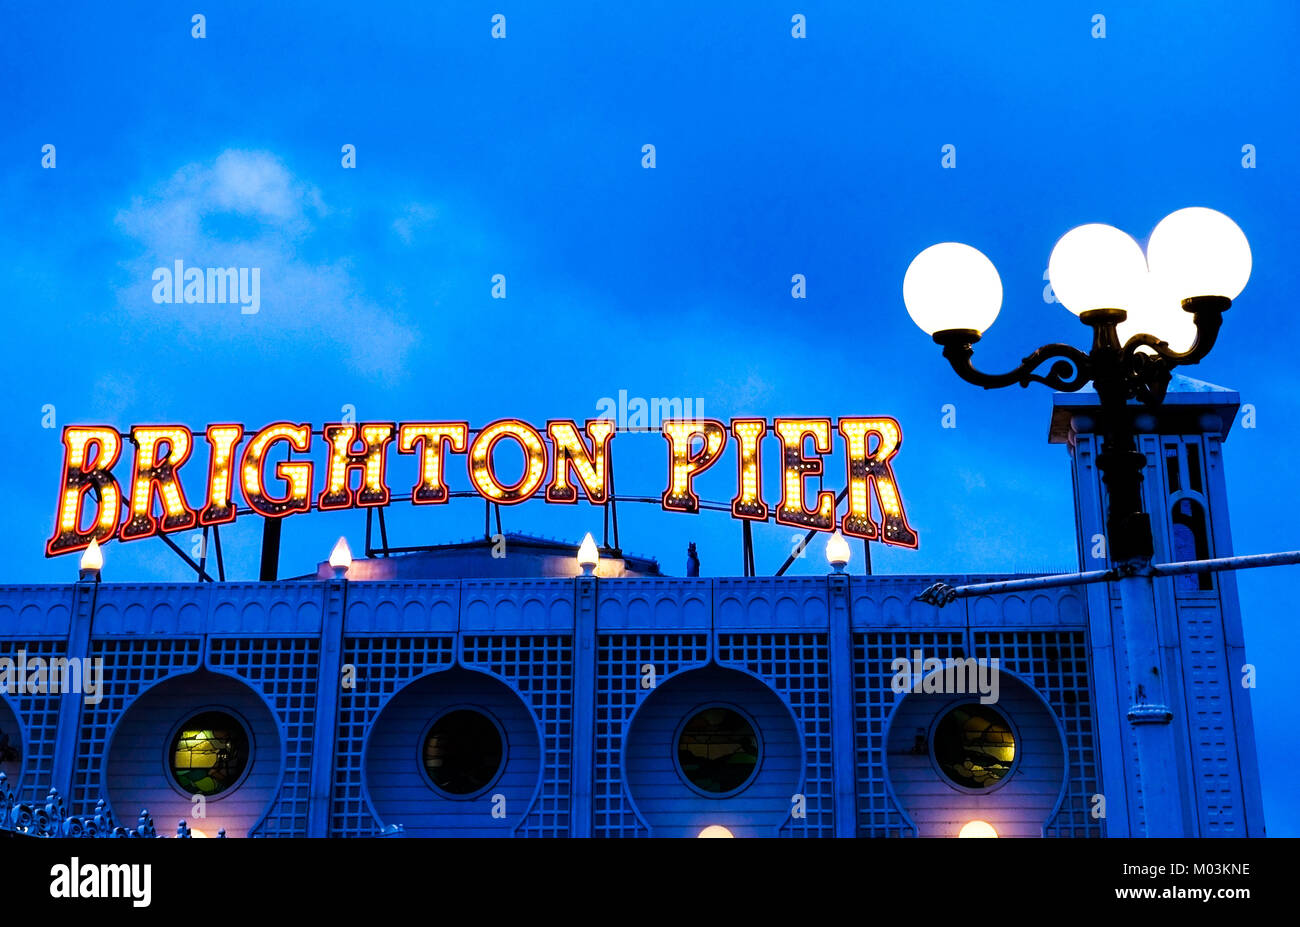 Brighton Pier bright red and yellow neon sign saying Brighton Pier, ontop of Brighton Pier entrance with a street - Stock Image